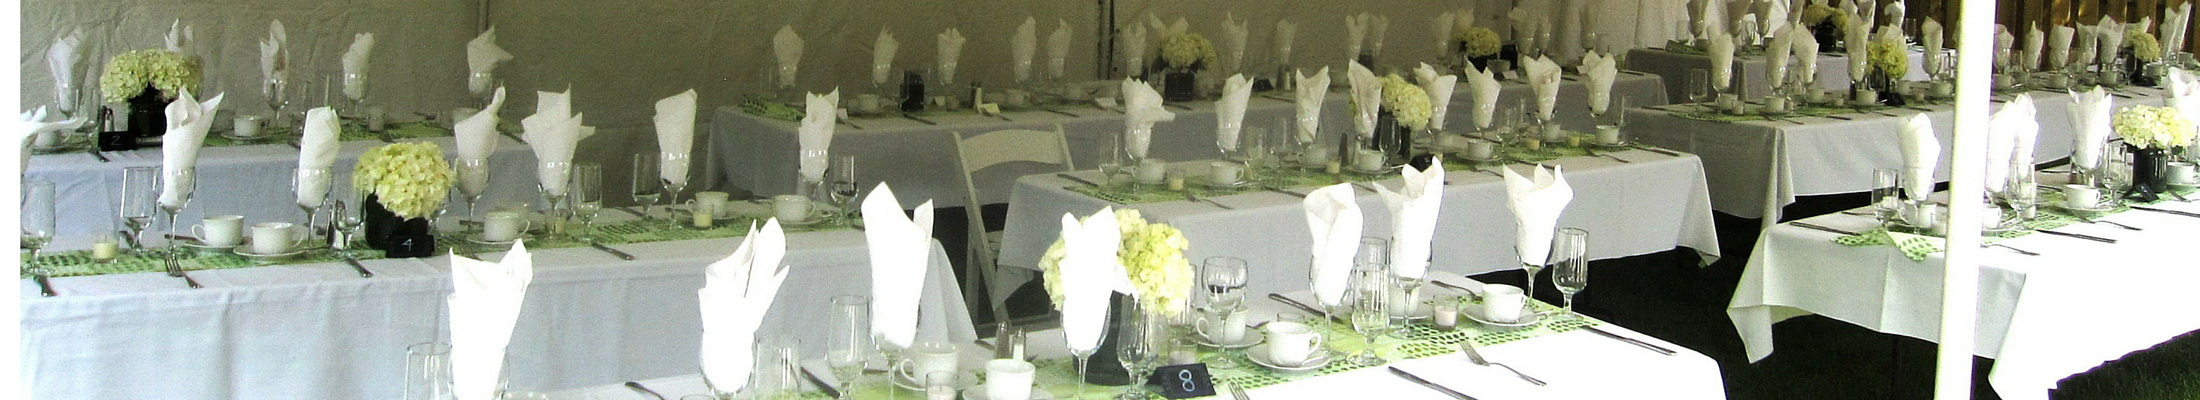 Caledon wedding catering small outdoor tented reception